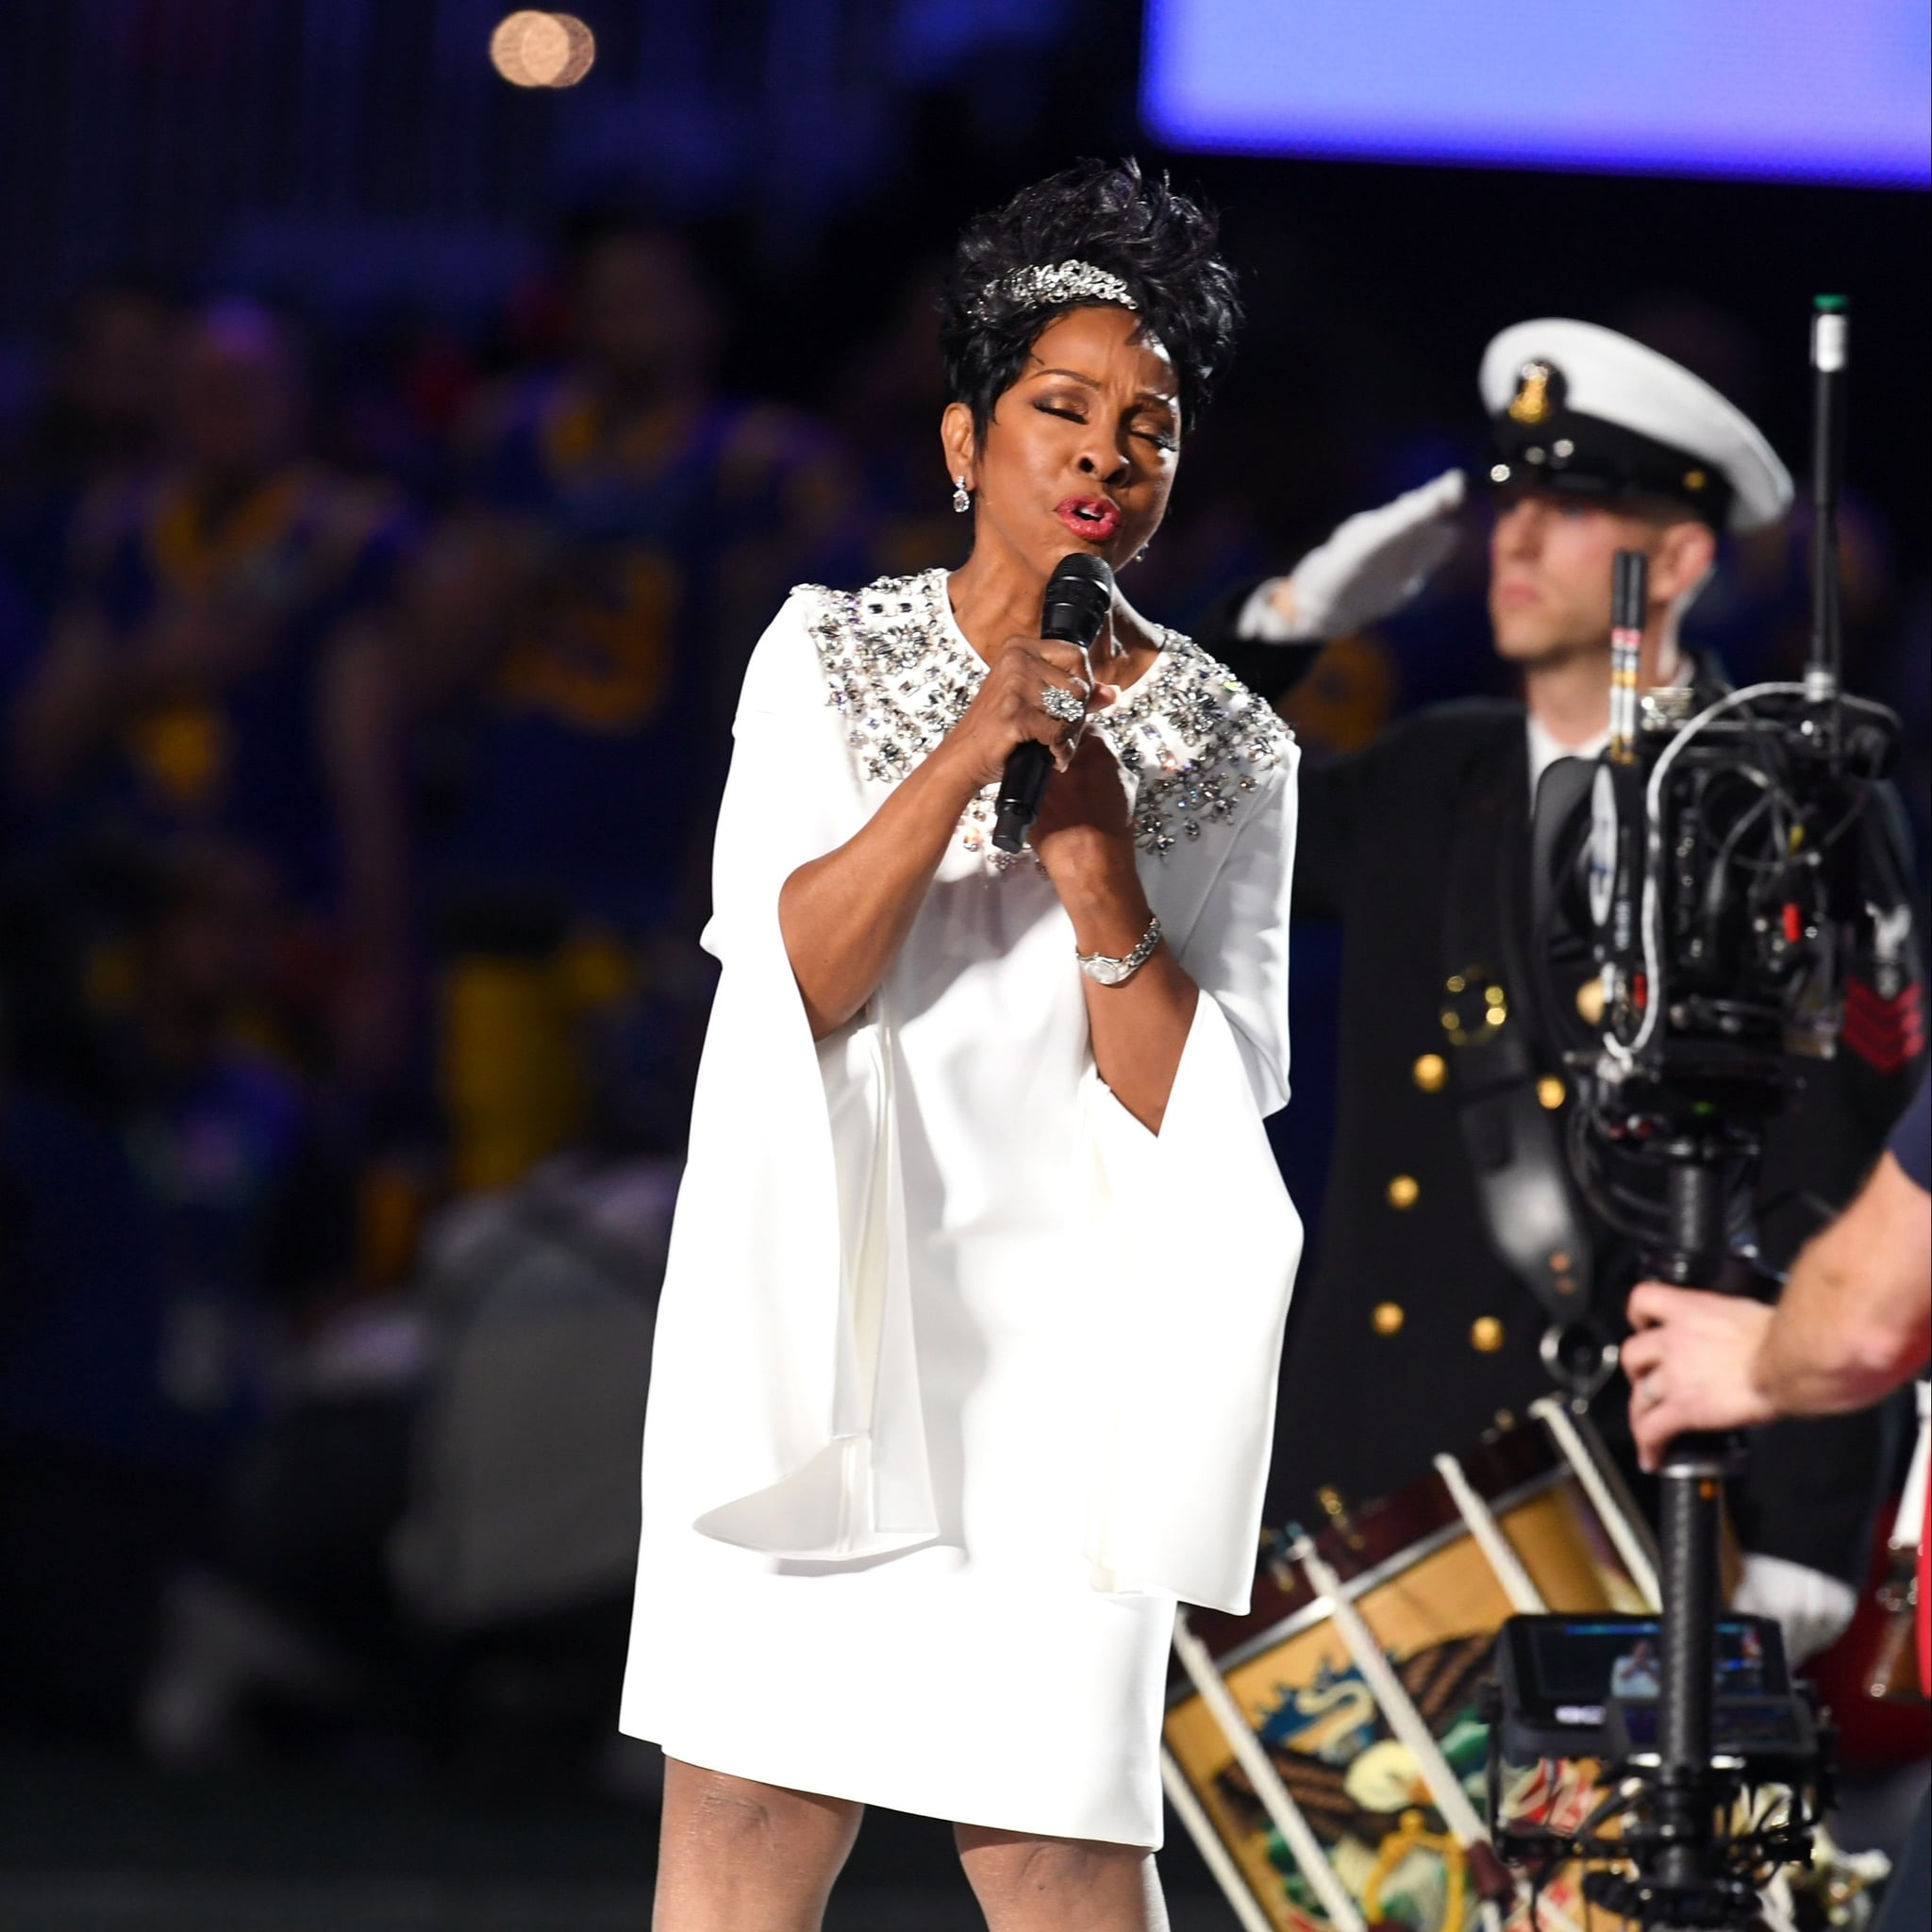 a848d7b94 Gladys Knight Sings the National Anthem at Super Bowl 2019 | POPSUGAR  Entertainment